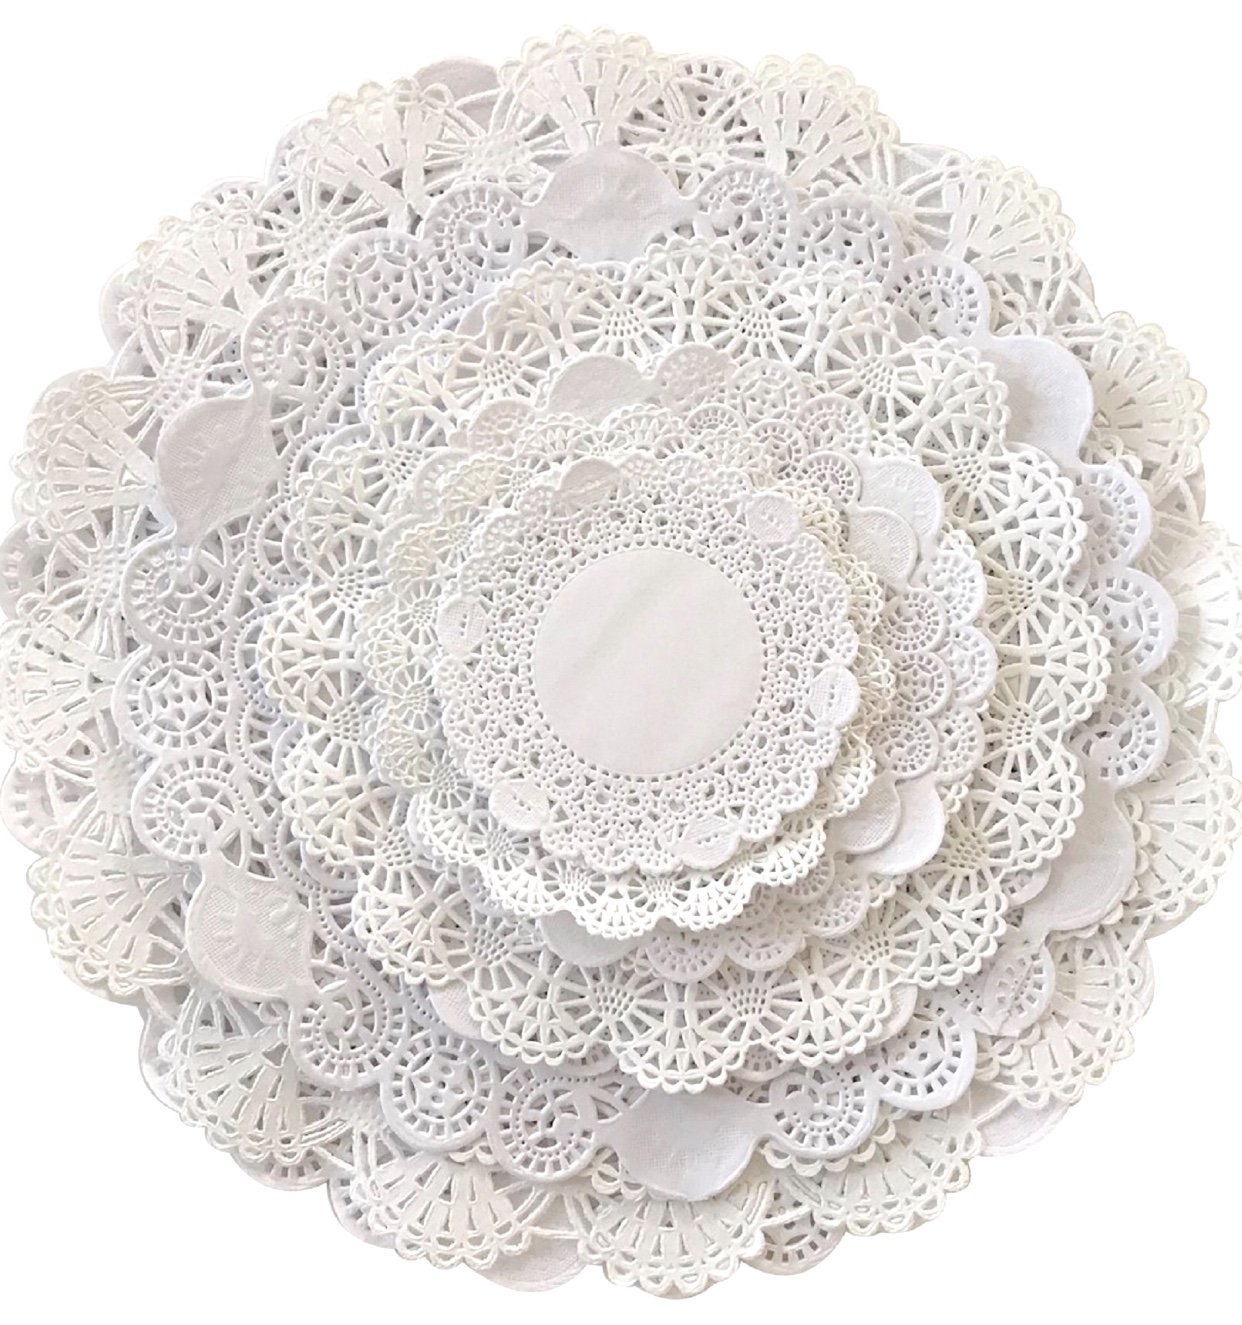 Variety Pack 120 Paper Lace Doilies 4'', 5'', 6'', 8'', 10'' and 12'' Cambridge & Royal Assorted Sizes